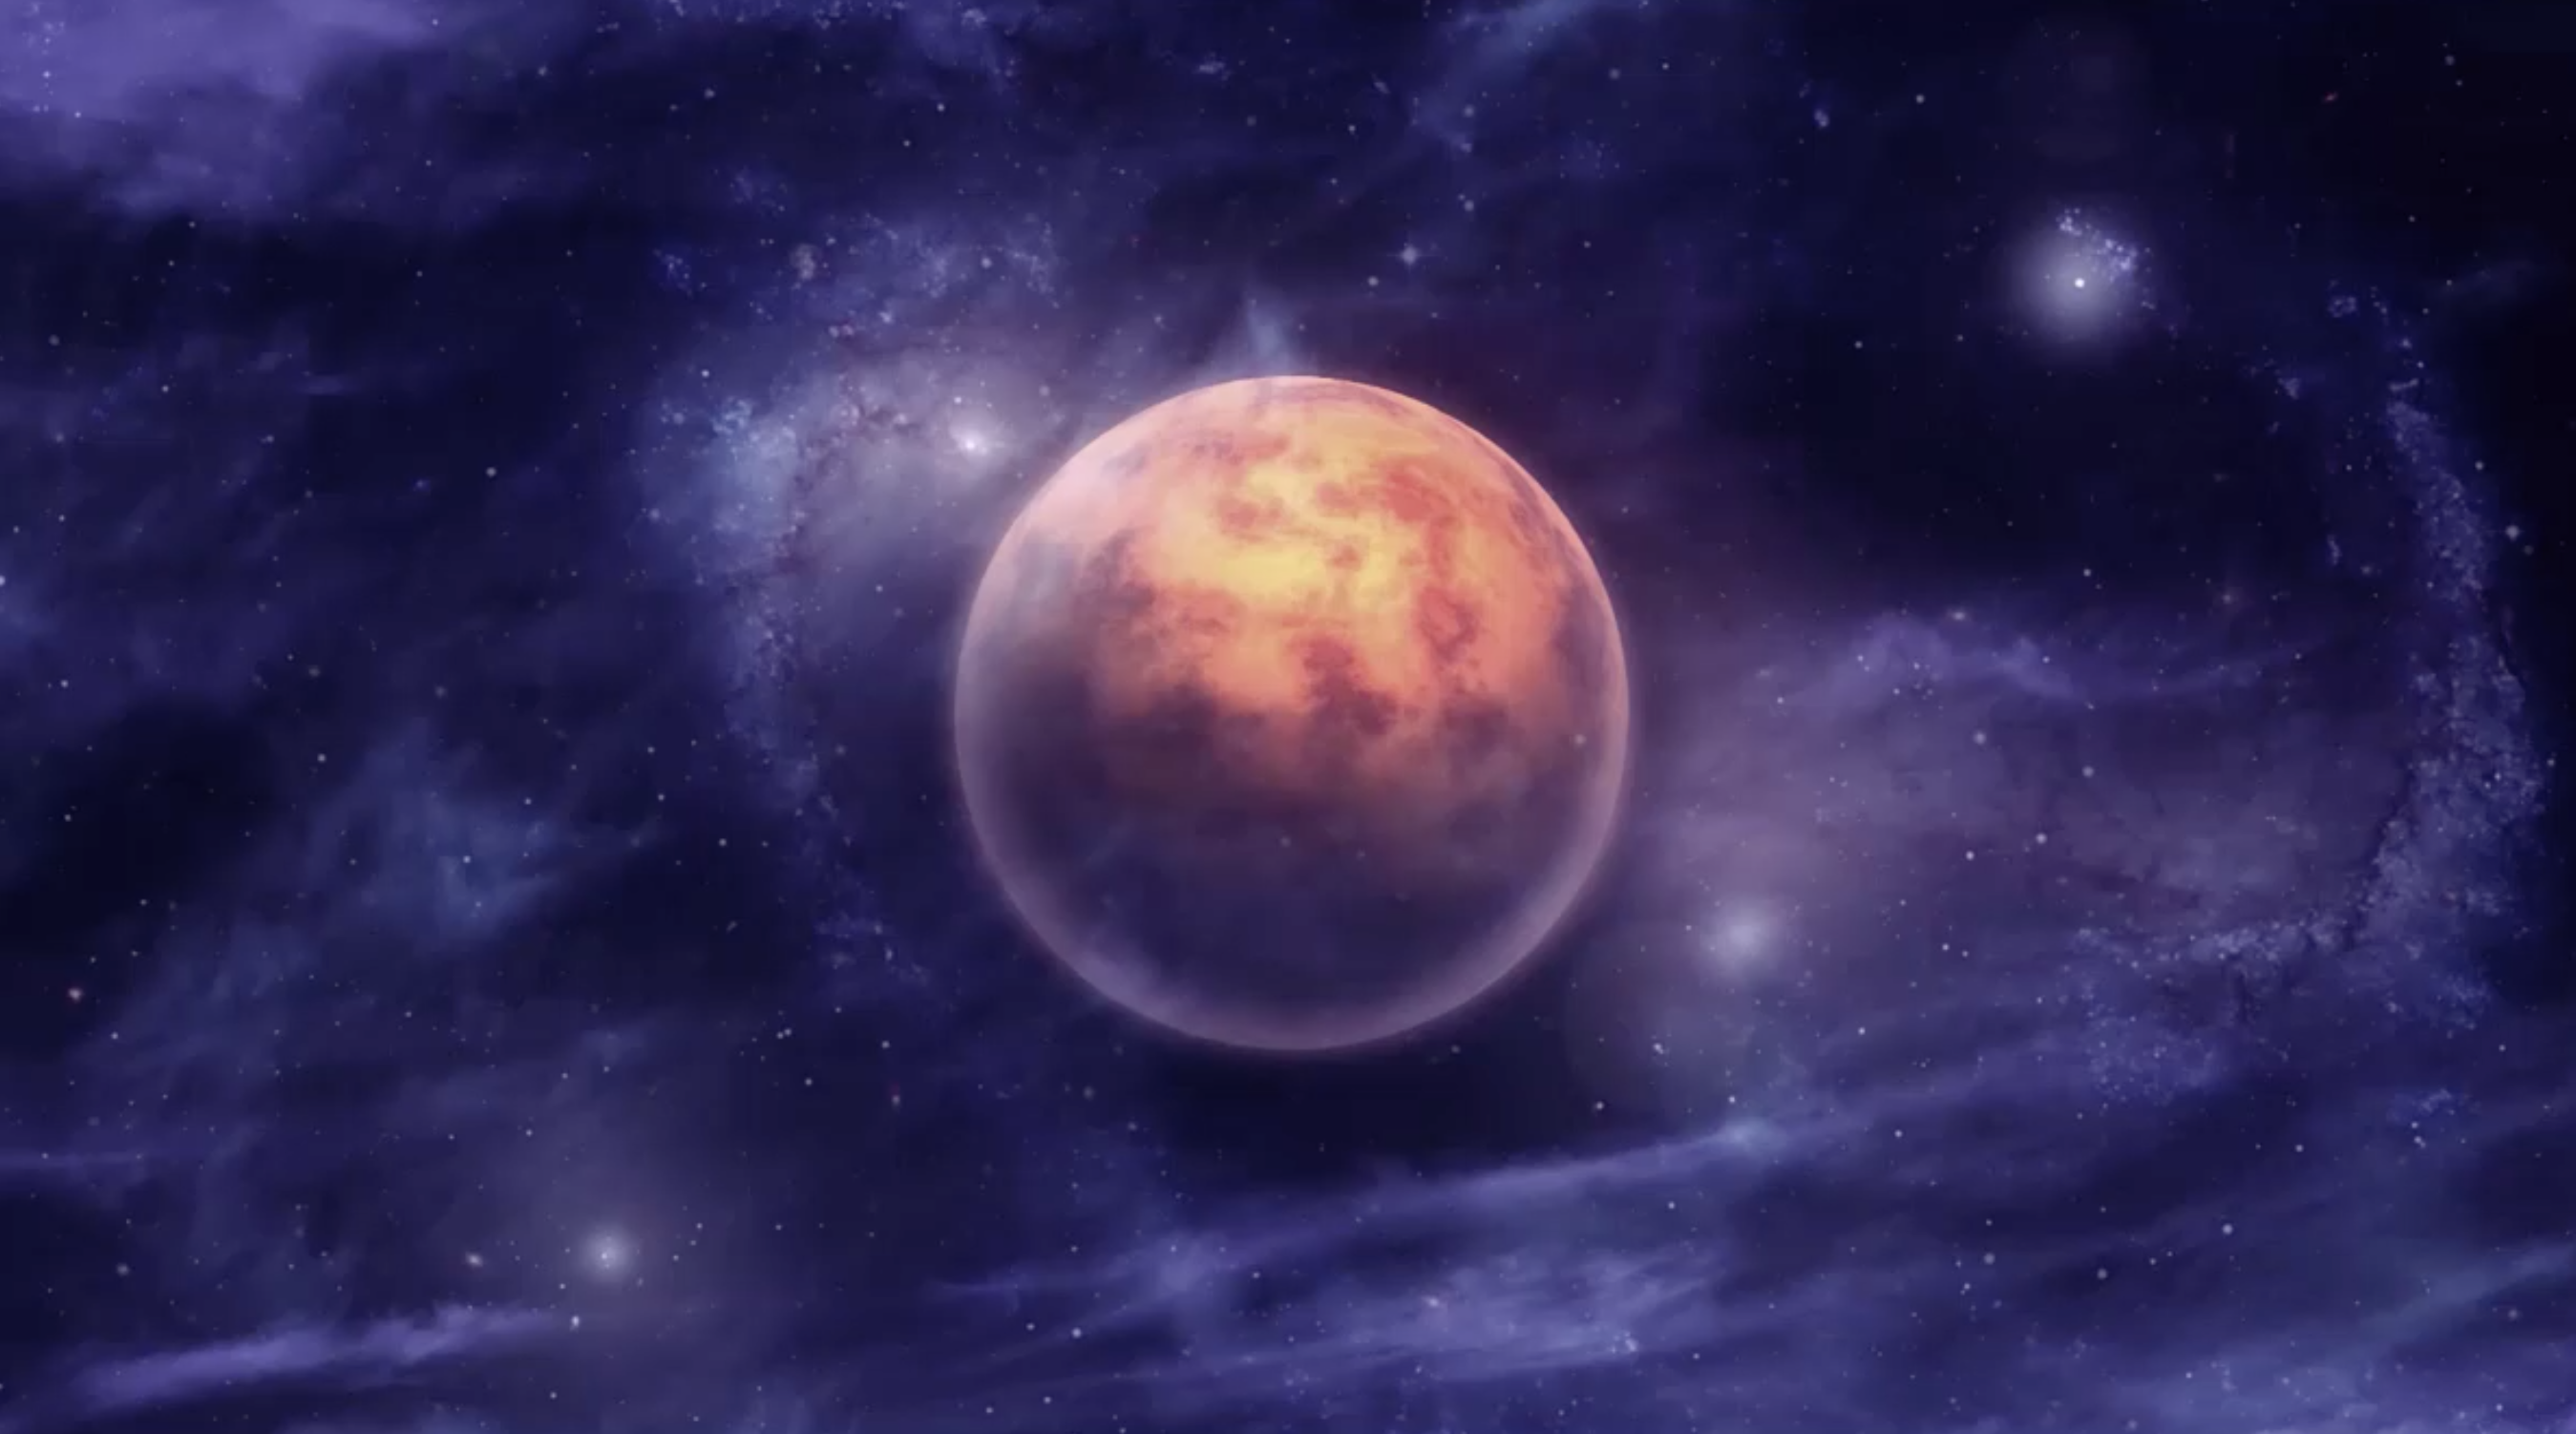 After Effects Video Tutorial: Texturized Space Scene - The Beat: A ...